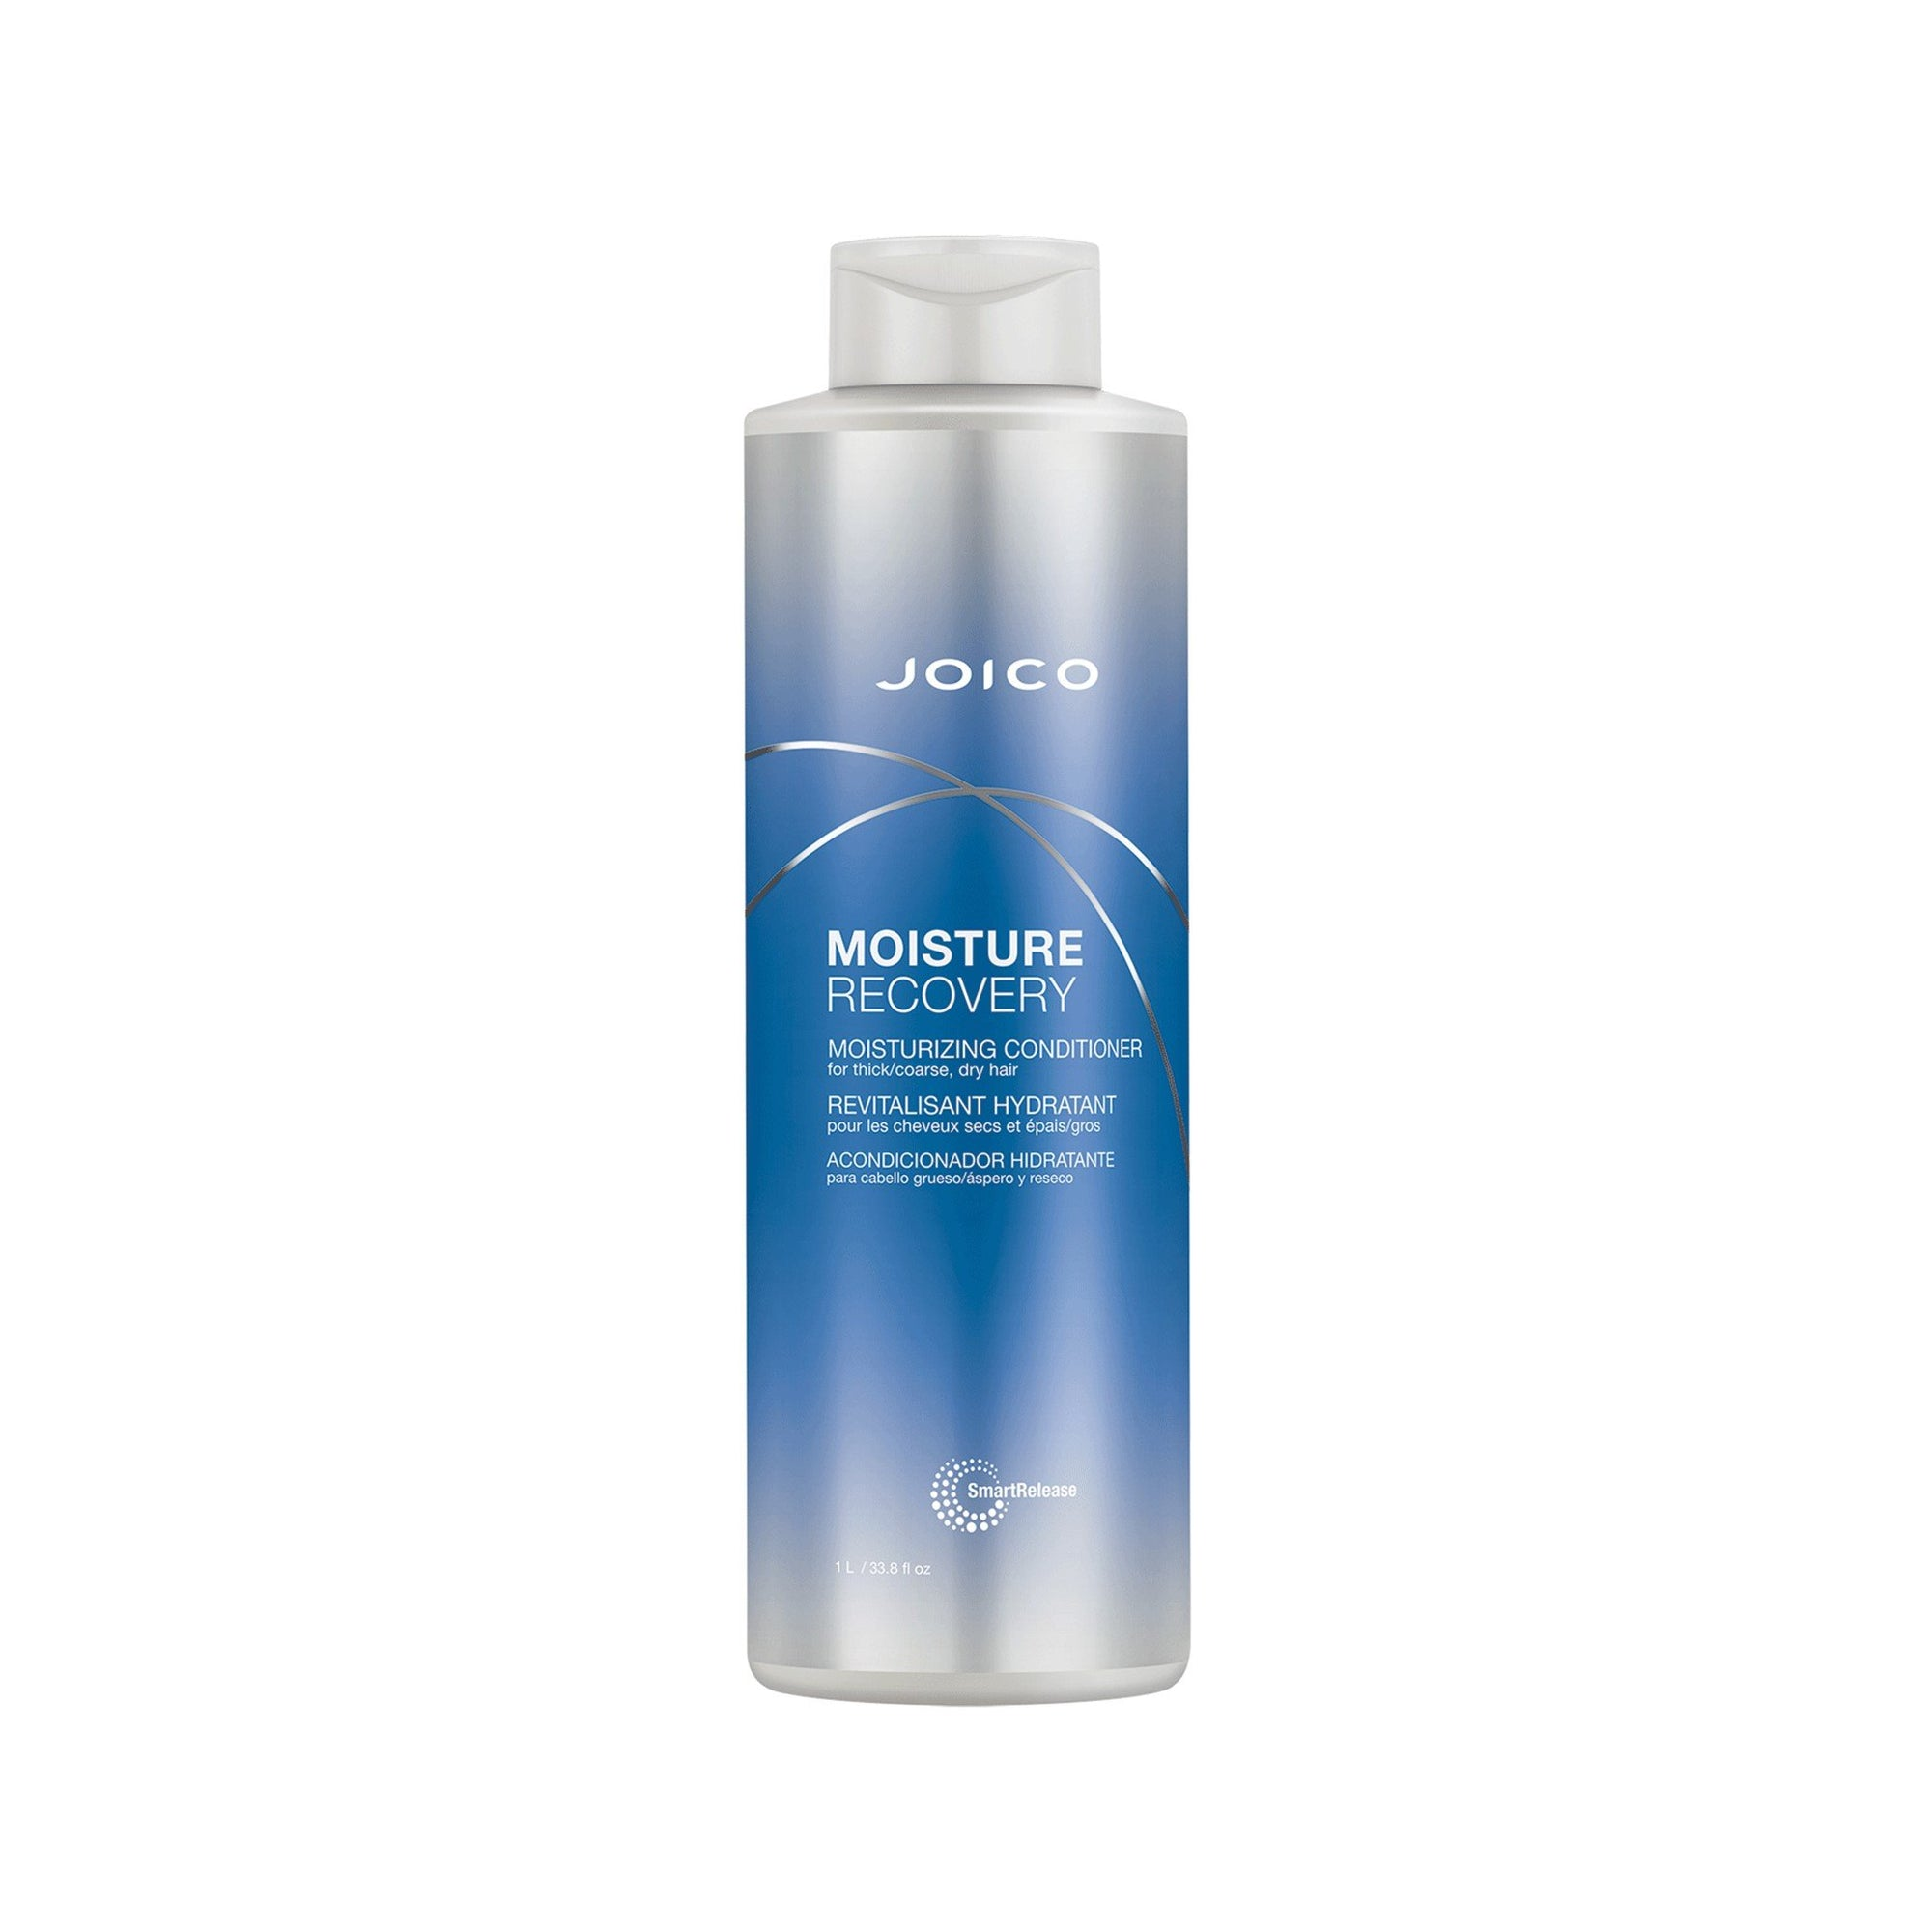 Joico Moisture Recovery Conditioner 1 Litre